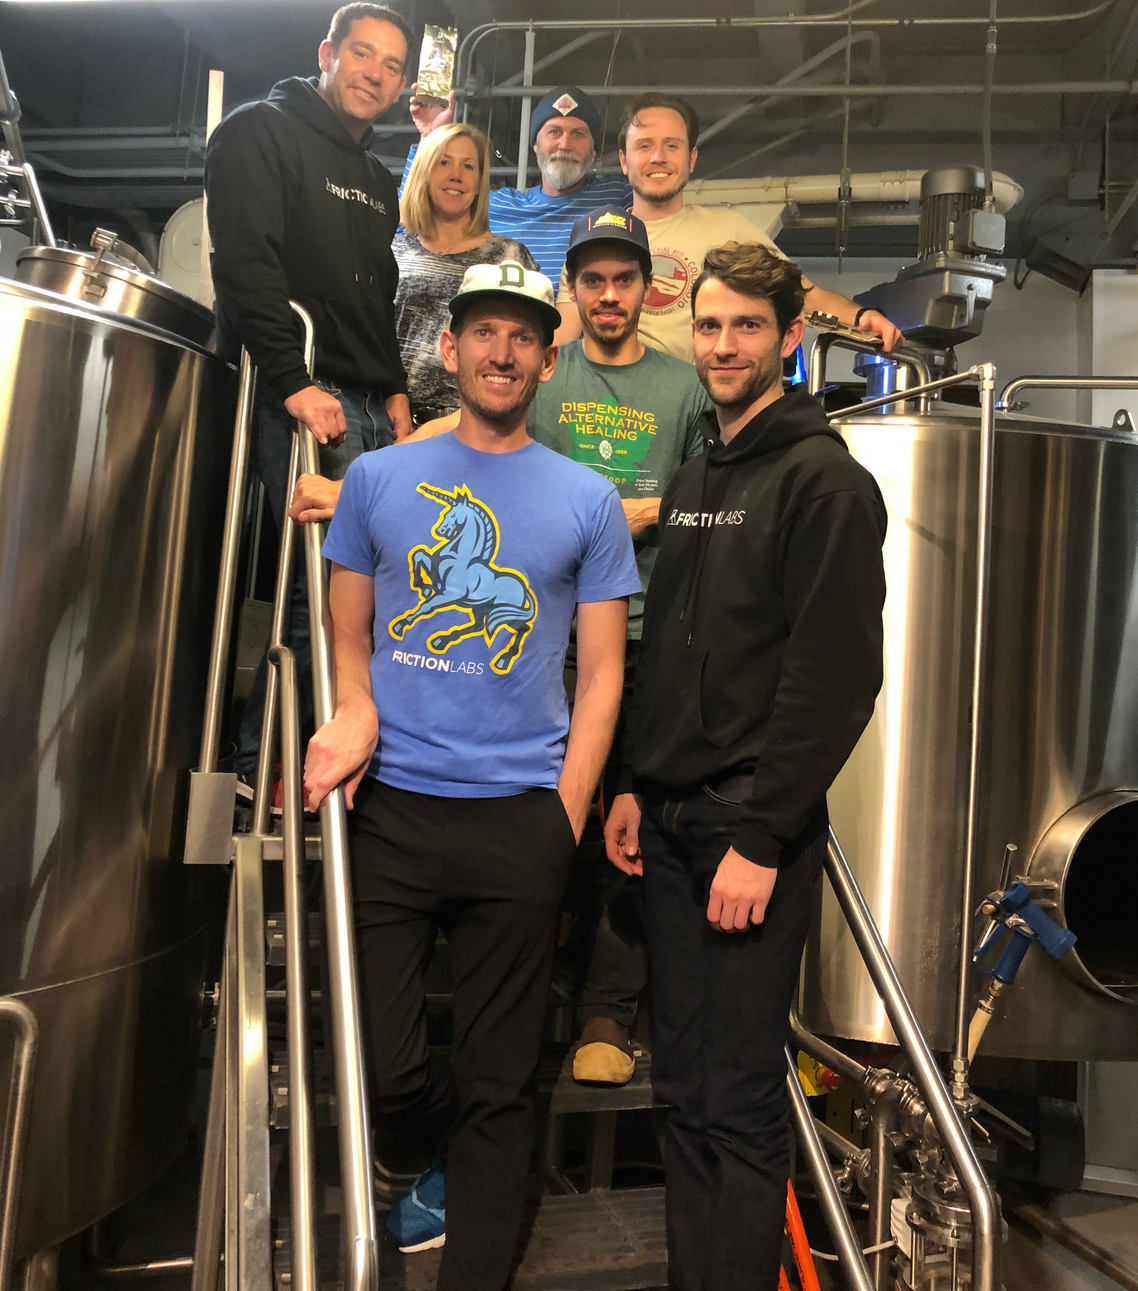 The Wynkoop Brewing and FrictionLabs teams in the brewery basement